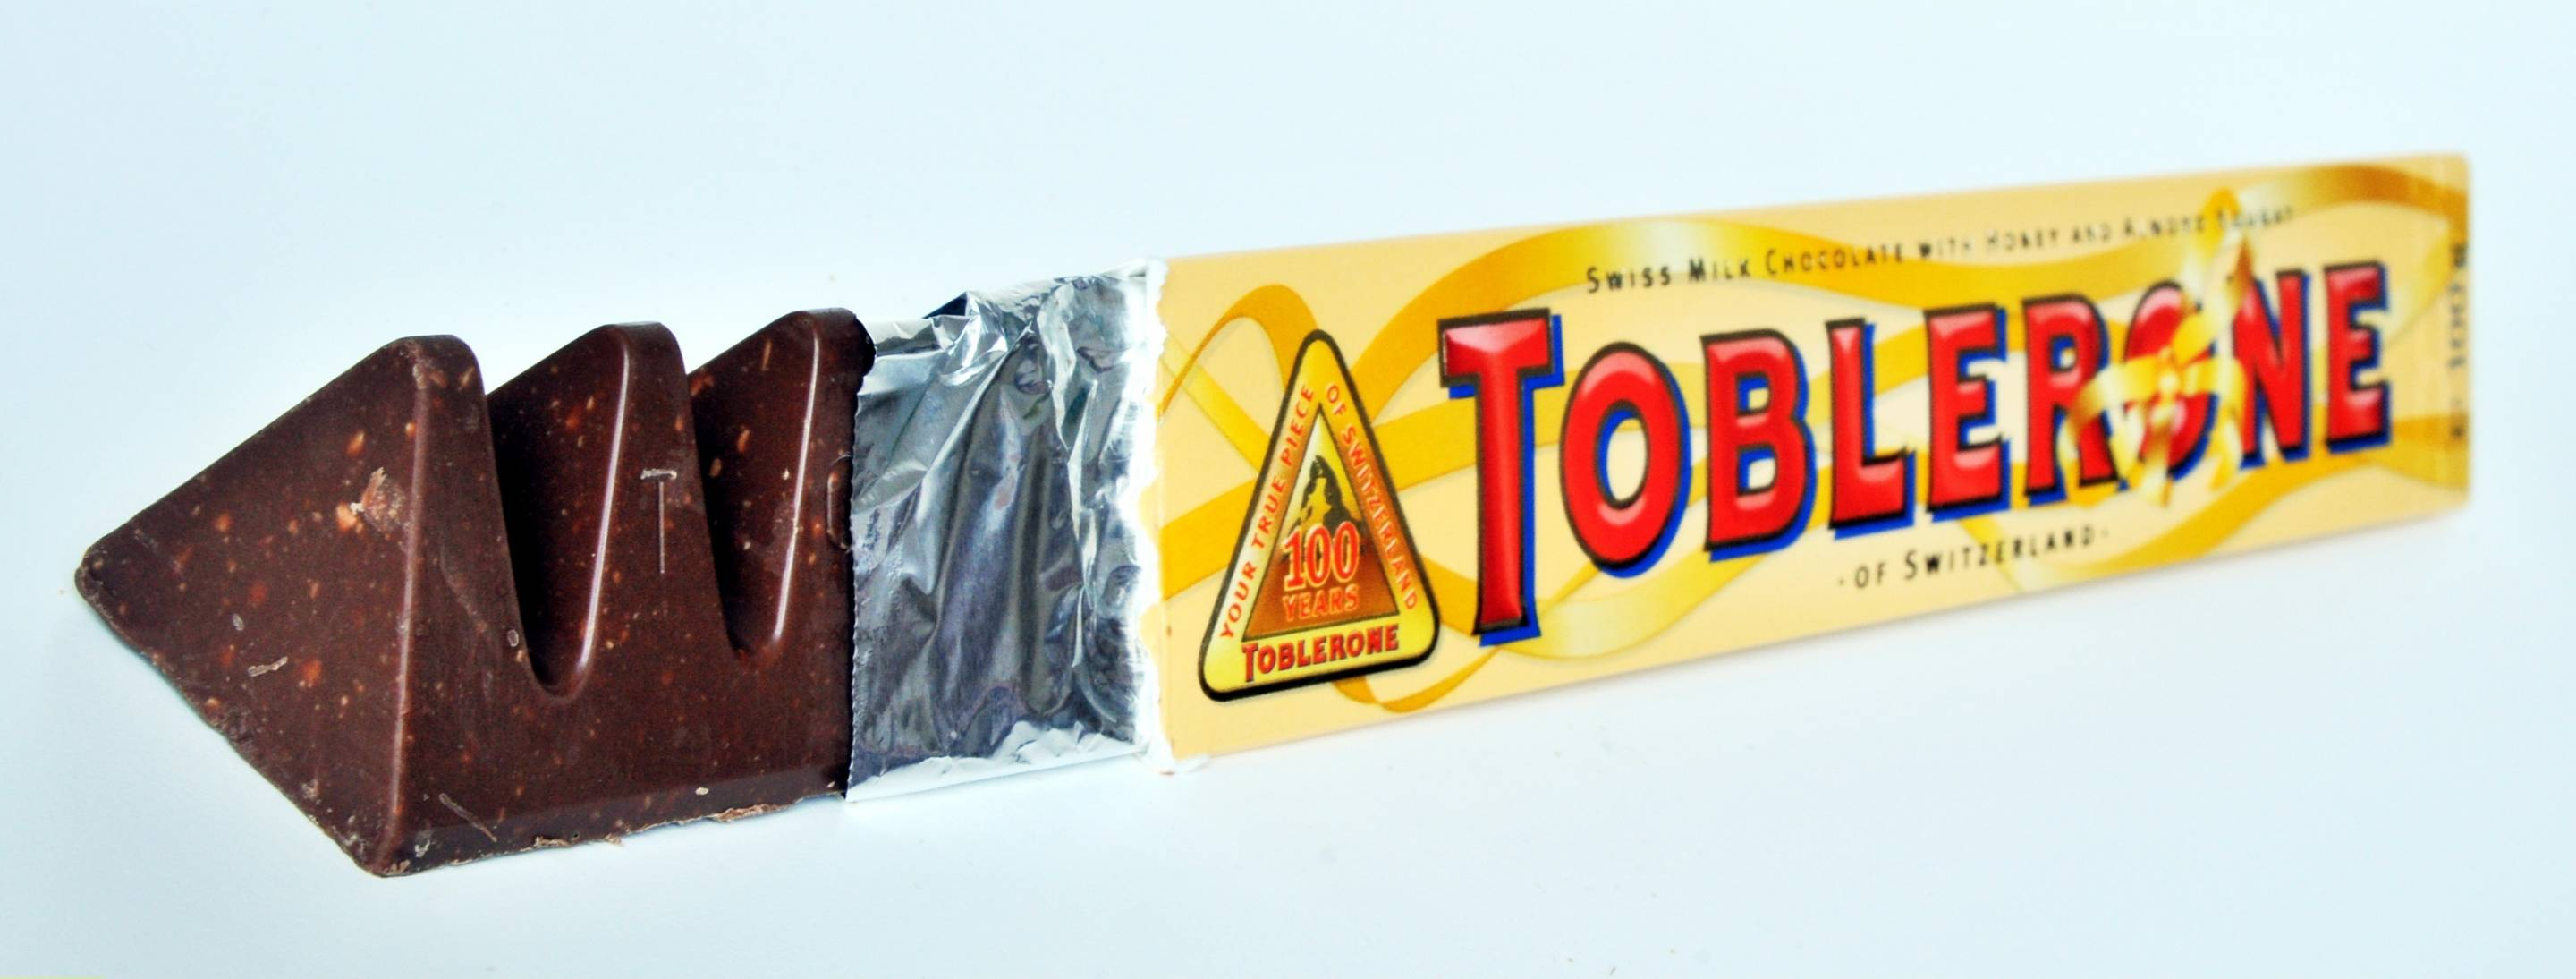 Toblerone Swiss chocolate Halal row